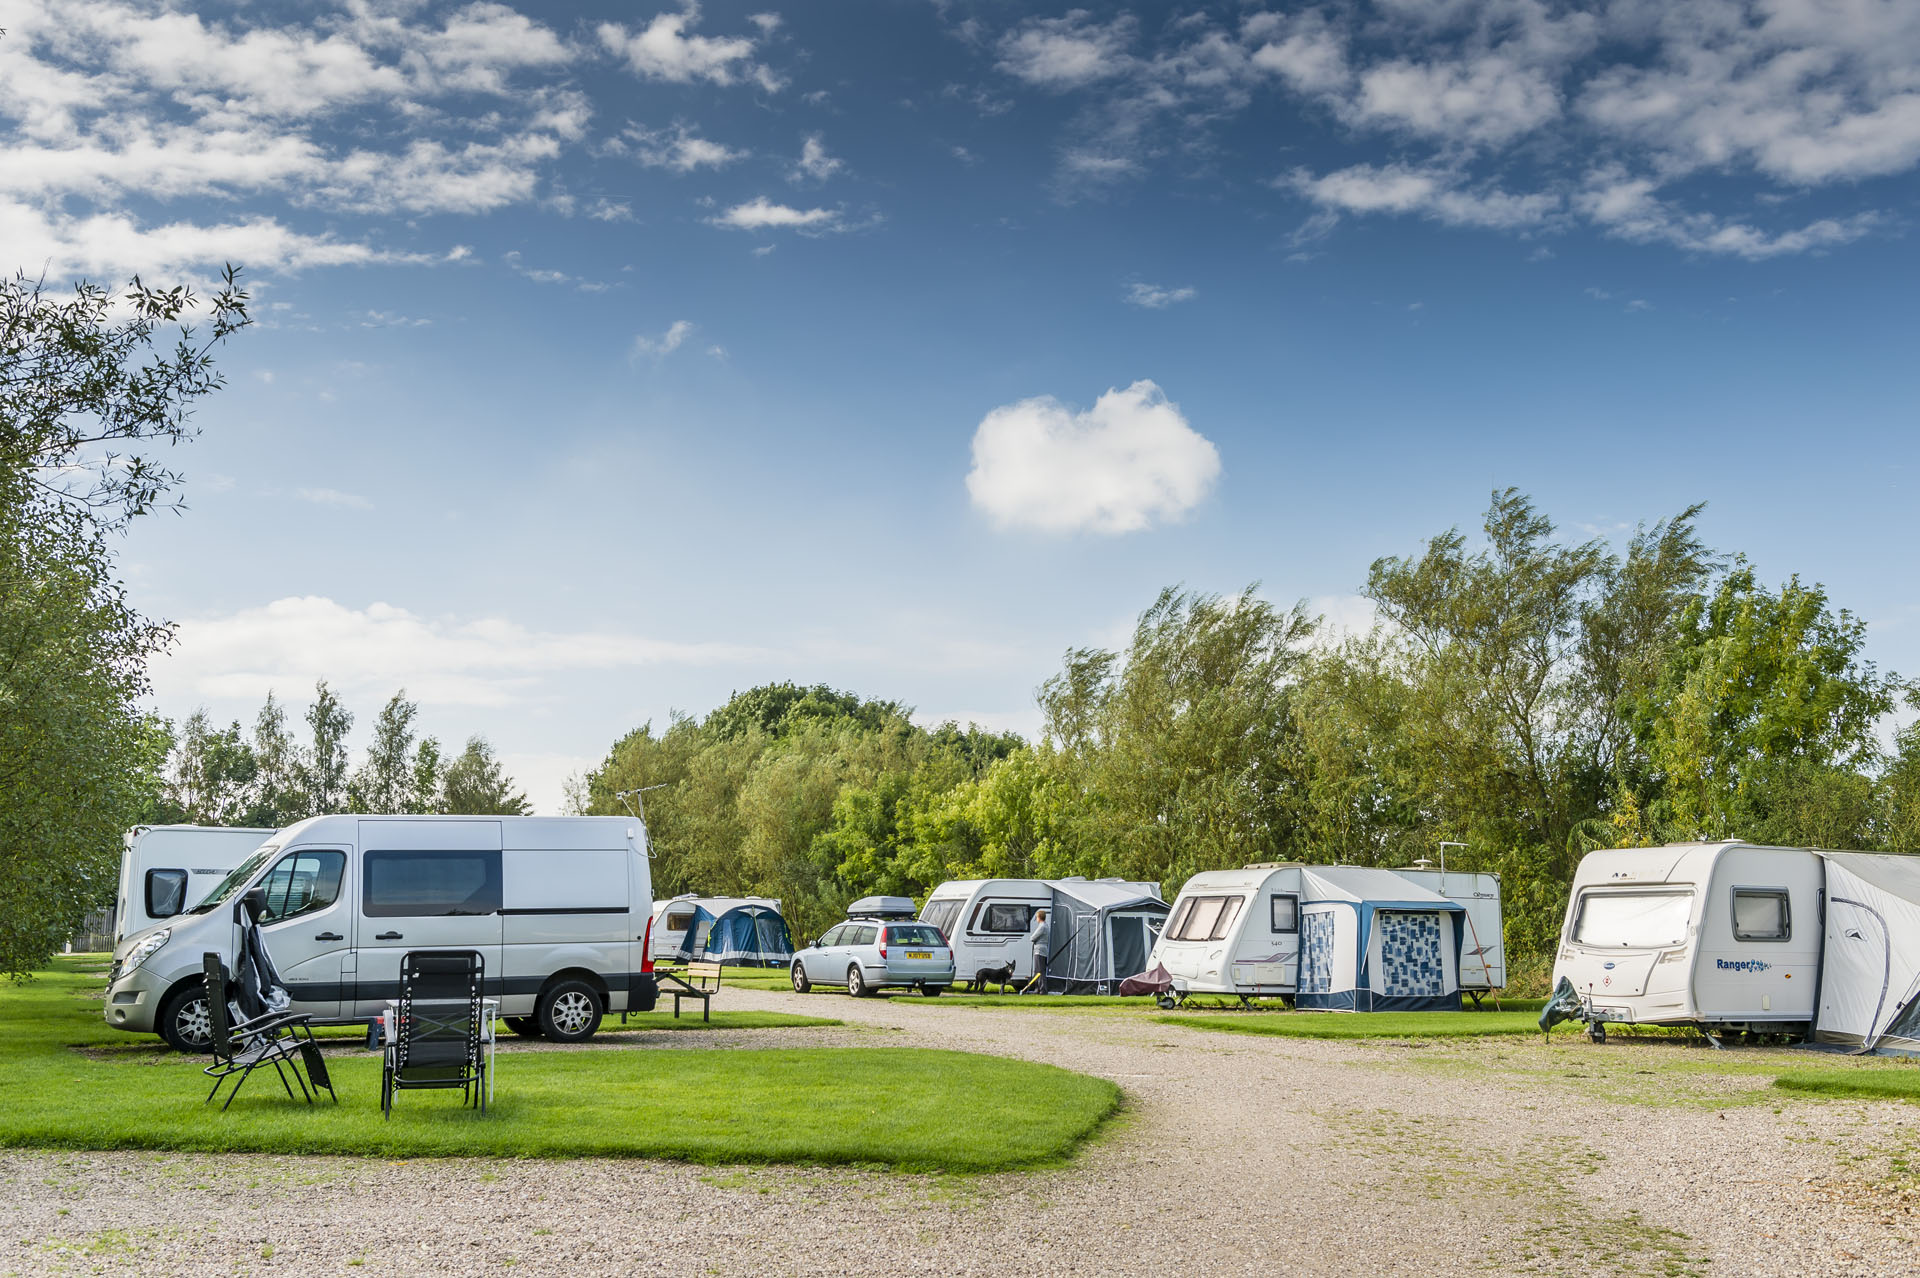 Devizes - Camping and Caravanning Club Site - The Camping